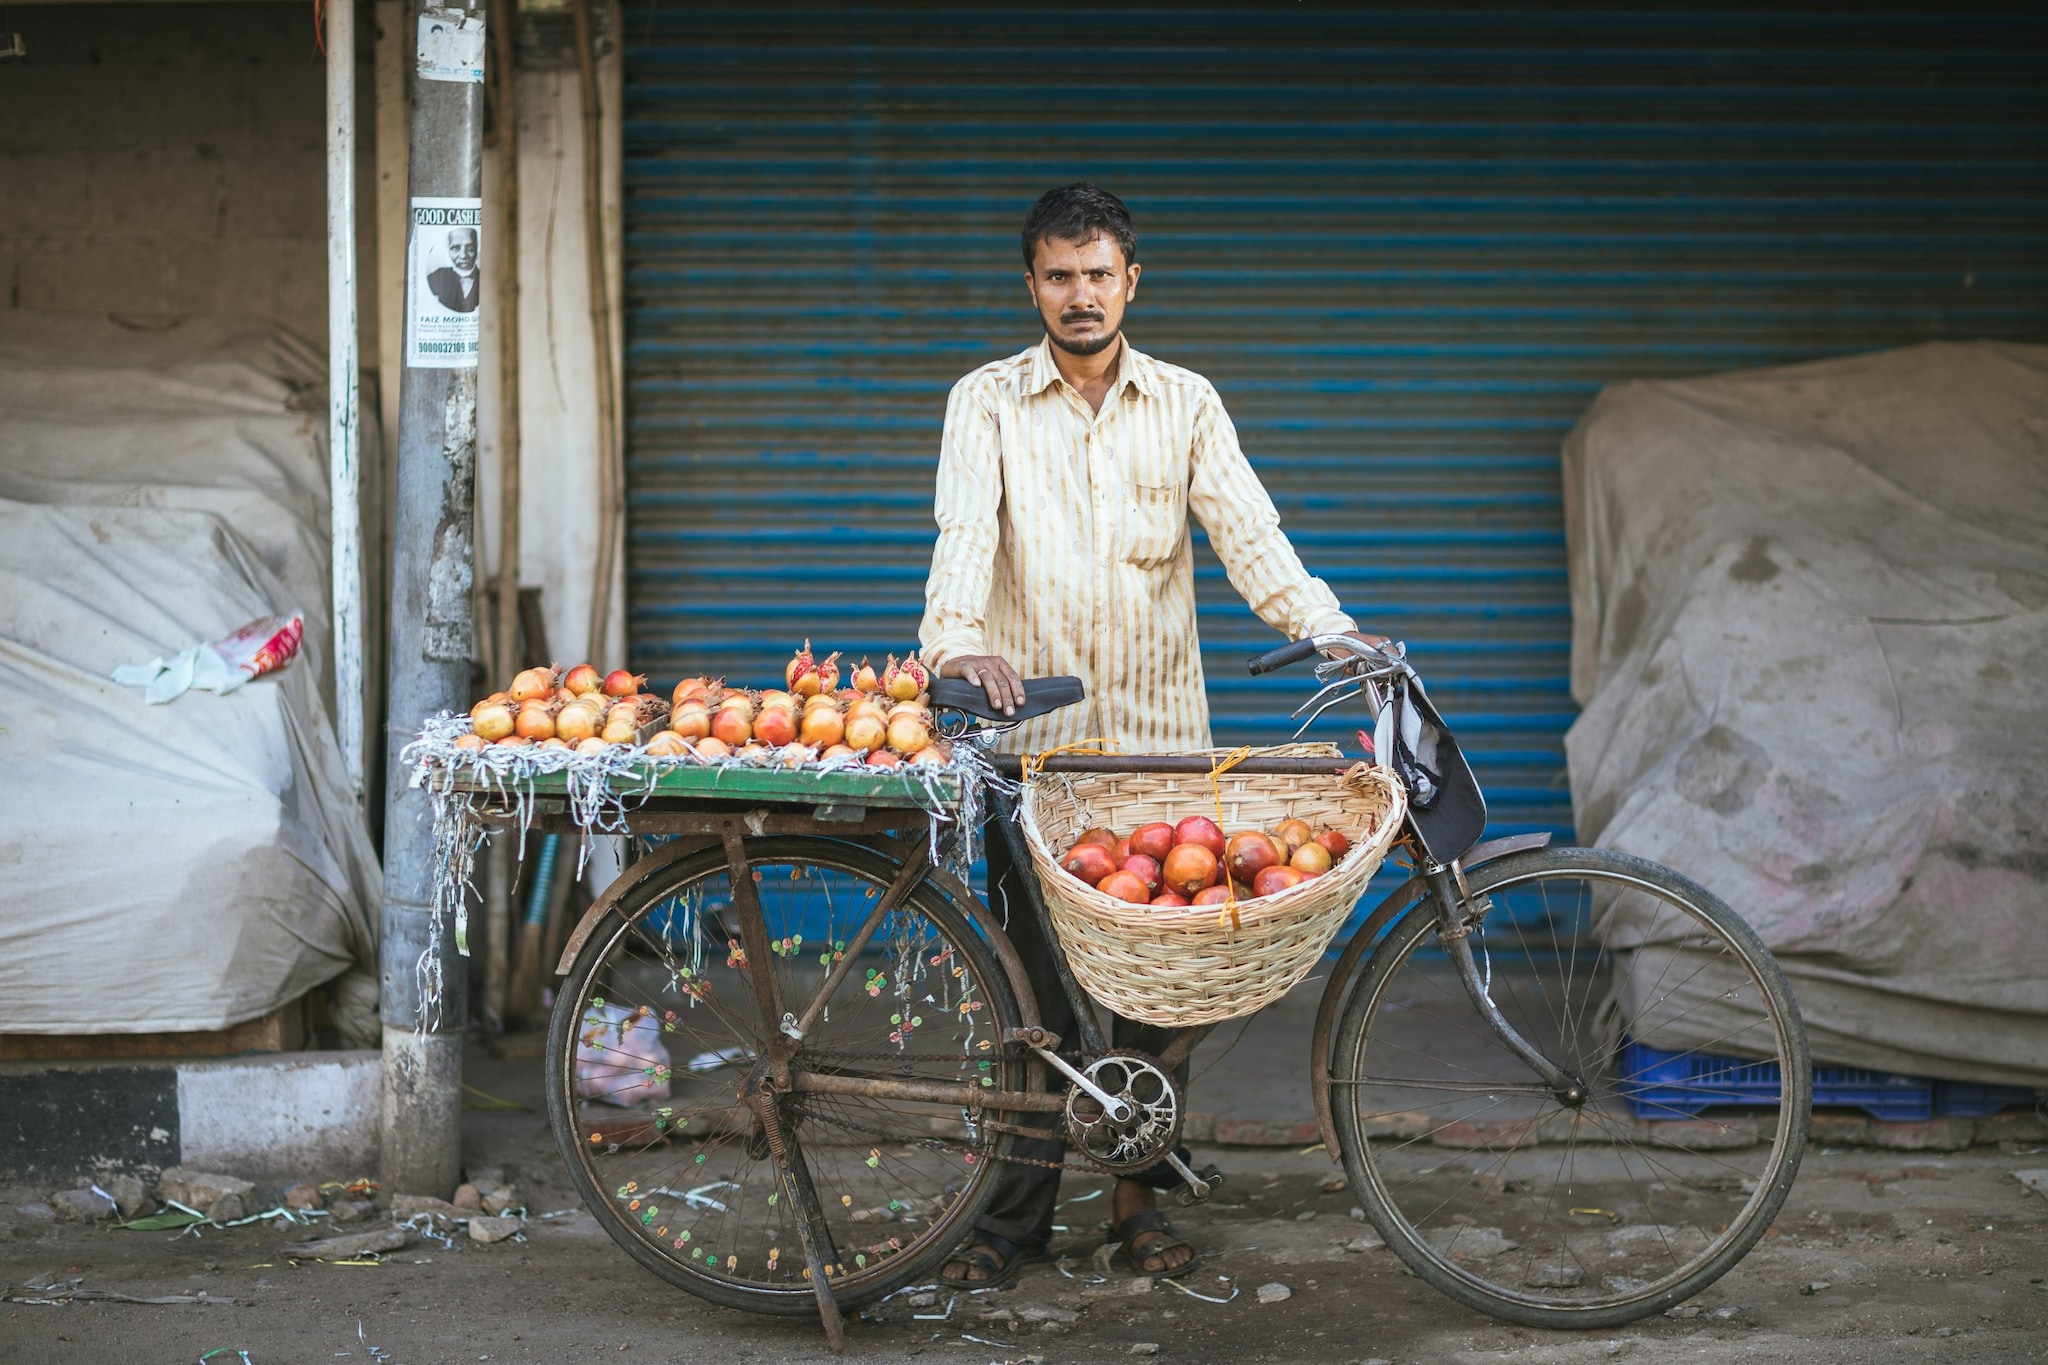 - The Fruit Seller. Ghouse sells up to 70-100 pieces of seasonal fruit every day between 6 am and 9 pm.